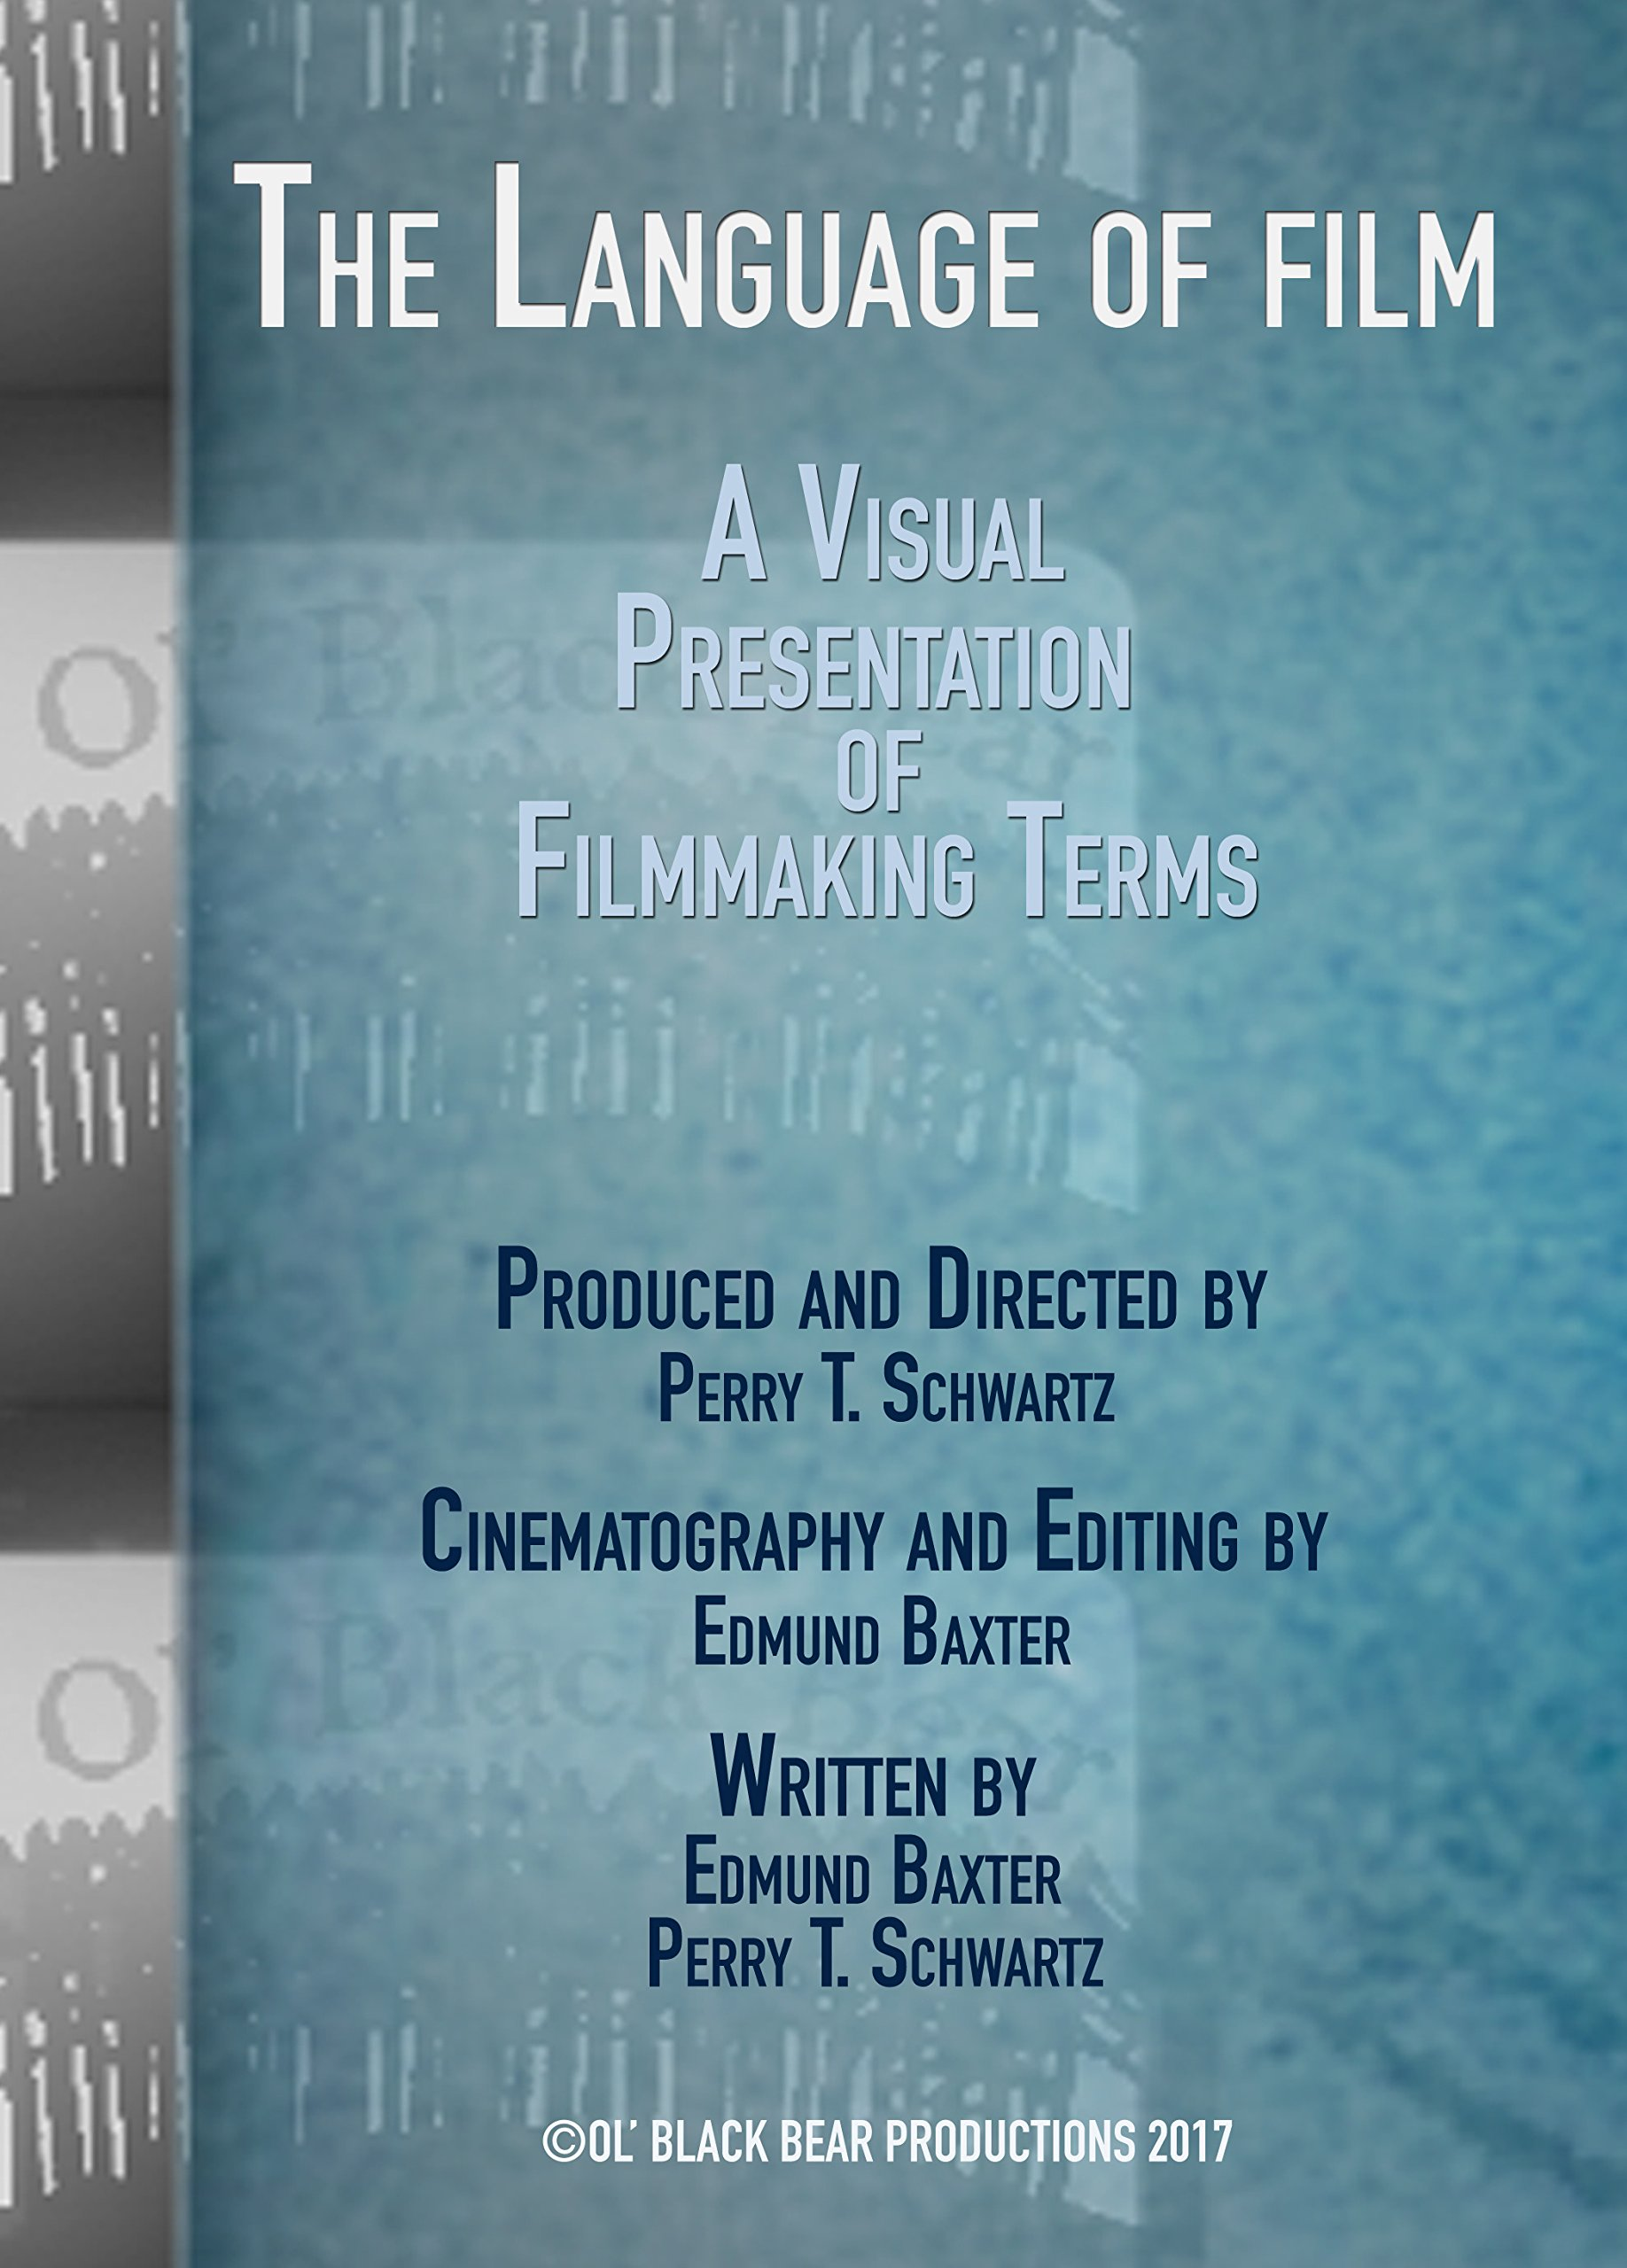 The Language of Film--A Visual Presentation of Filmmaking Terms